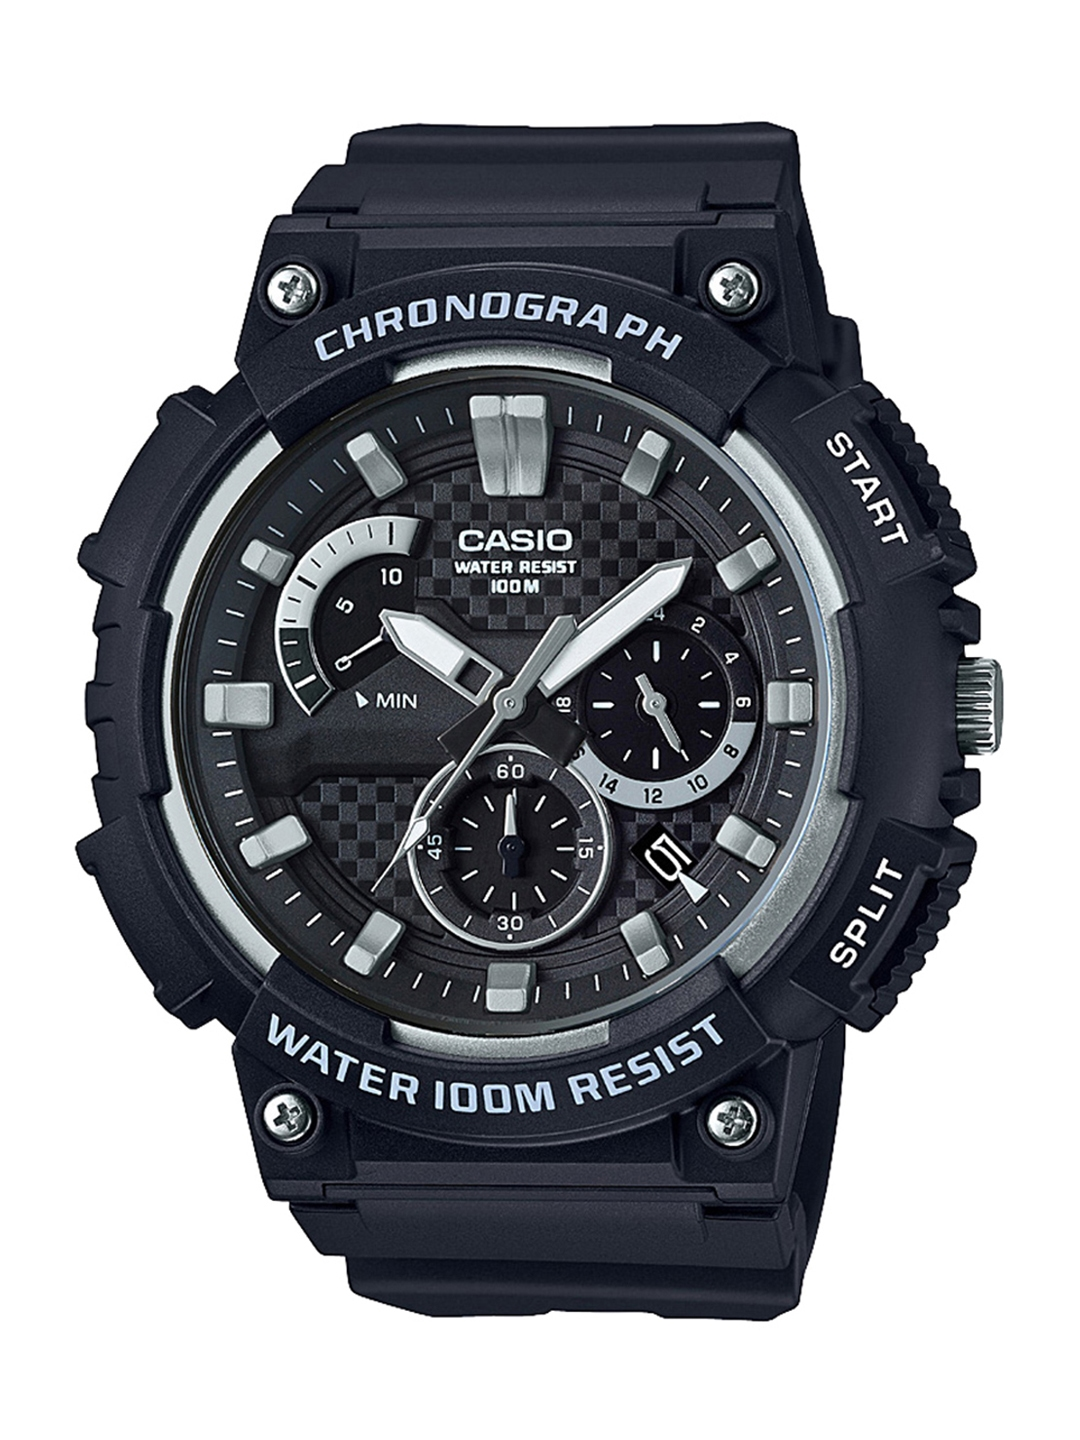 ffc837b213c Buy CASIO Men Black Analogue Watch A1322 - Watches for Men 7080689 ...